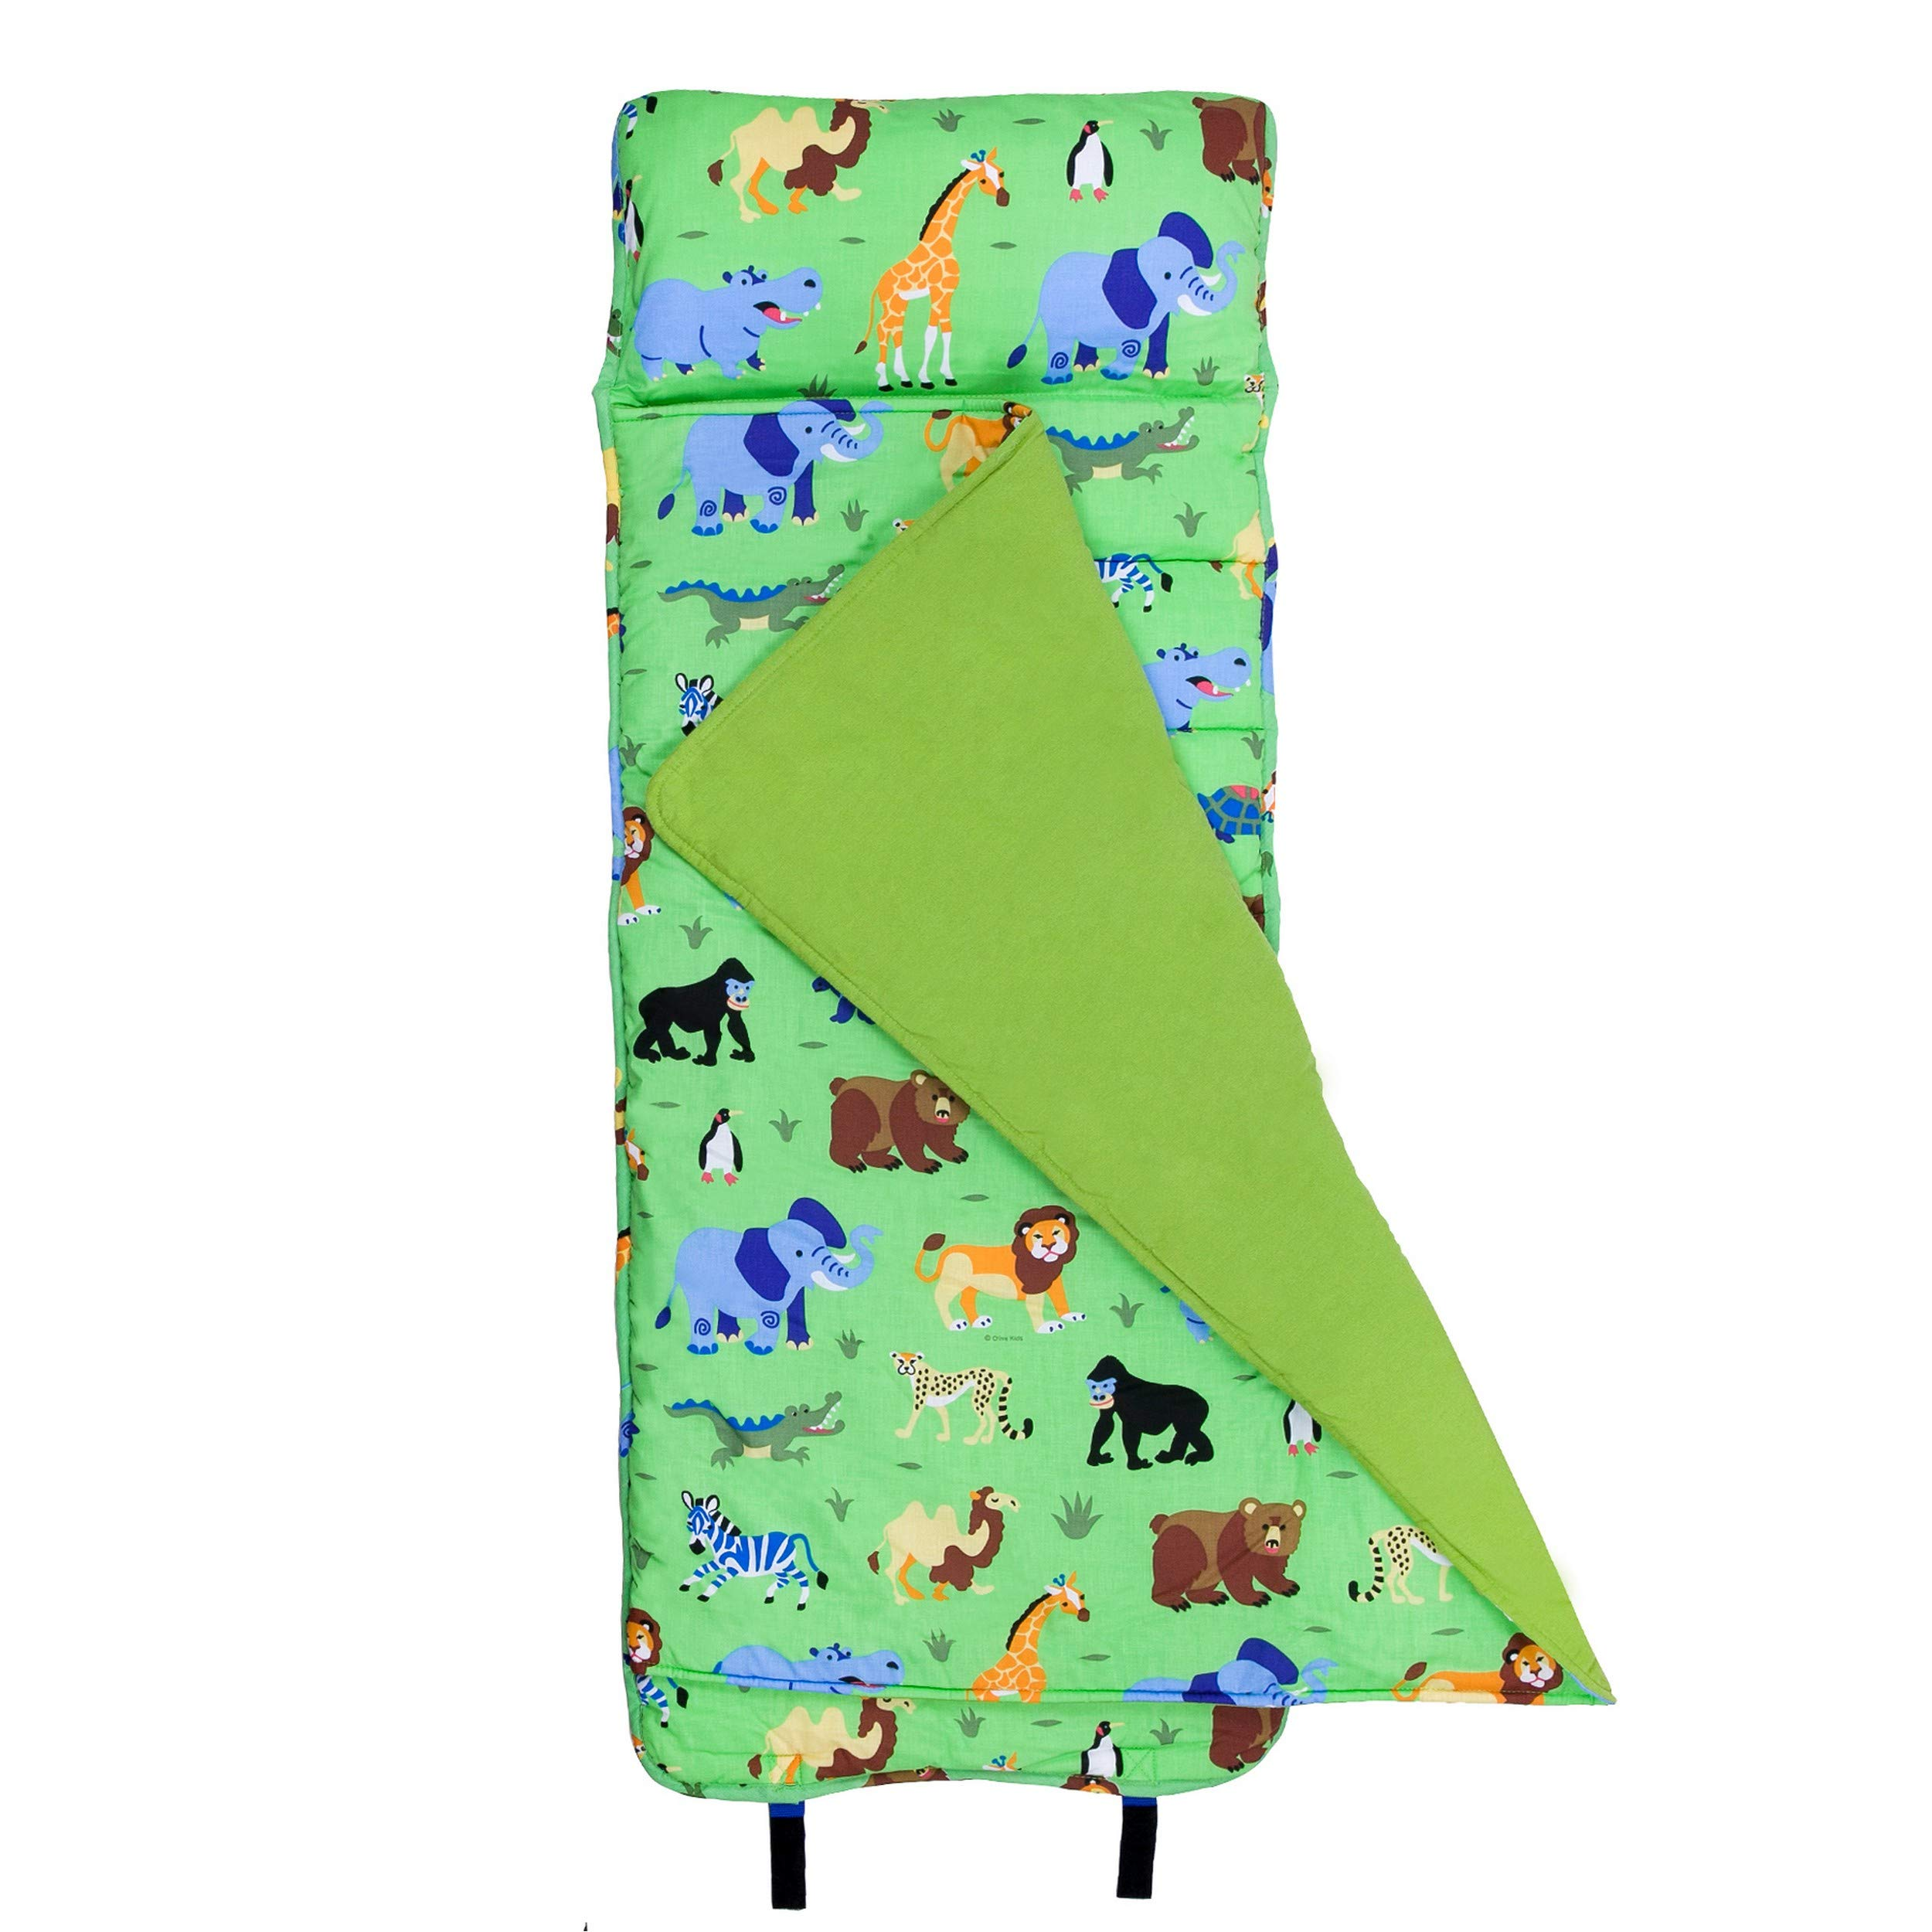 Wildkin Nap Mat with Pillow for Toddler Boys and Girls, Perfect Size for Daycare and Preschool, Designed to Fit on a Standard Cot, Patterns Coordinate with Our Lunch Boxes and Backpacks by Wildkin